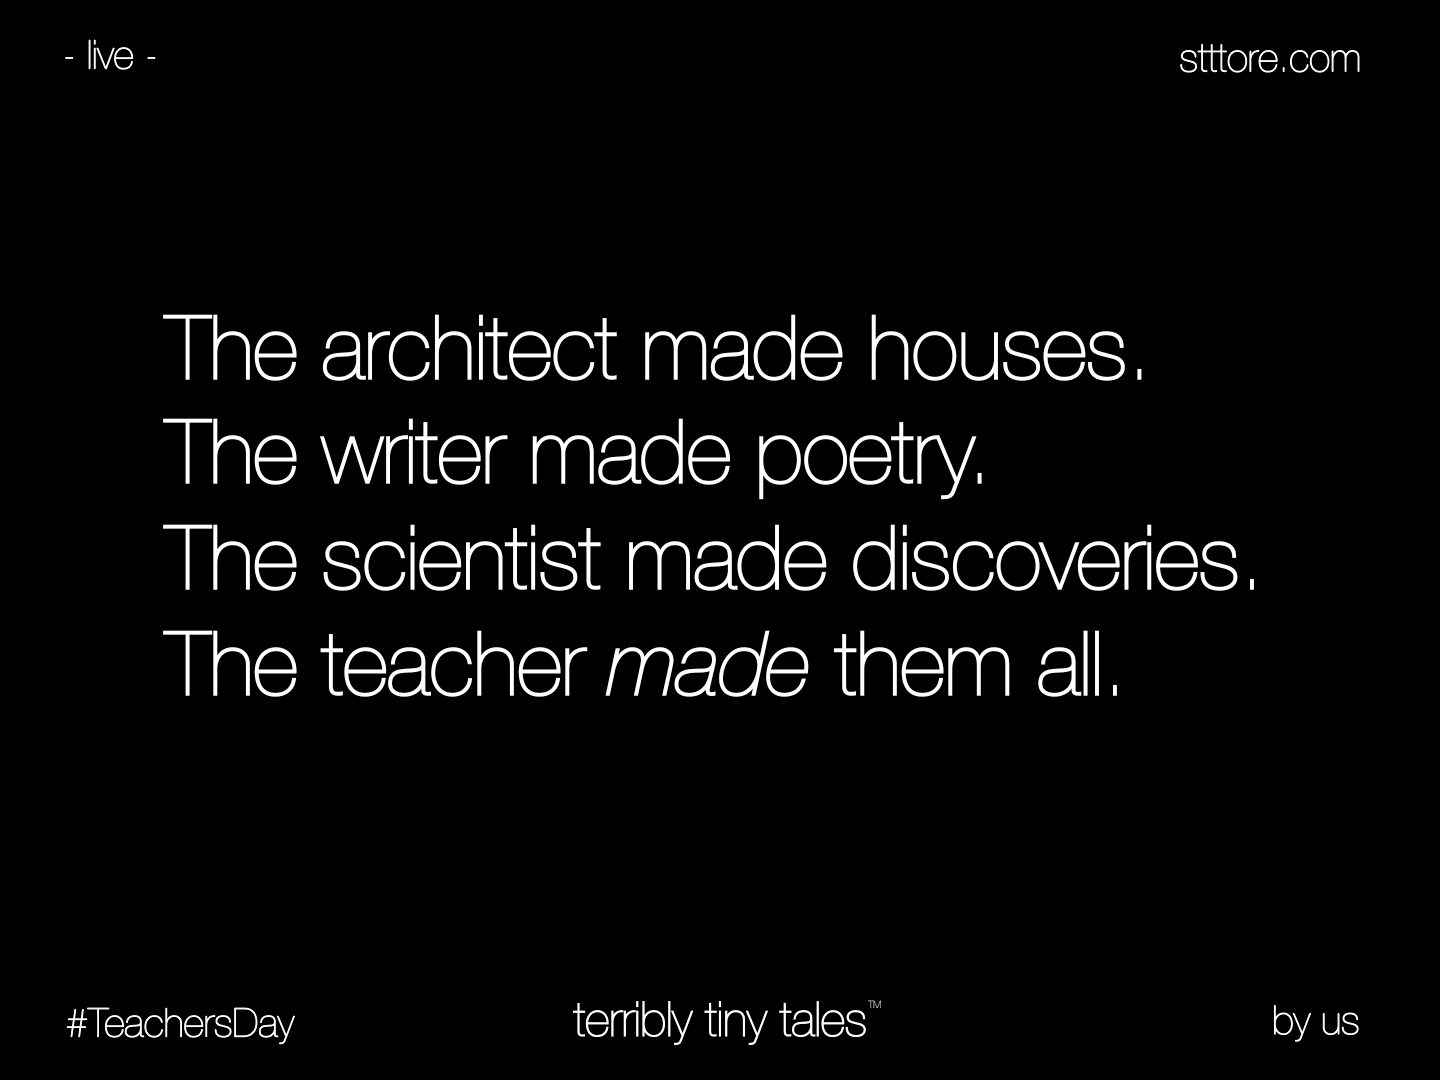 Timeline Photos Terribly Tiny Tales Quotes On Teachers Day Tiny Tales New Quotes